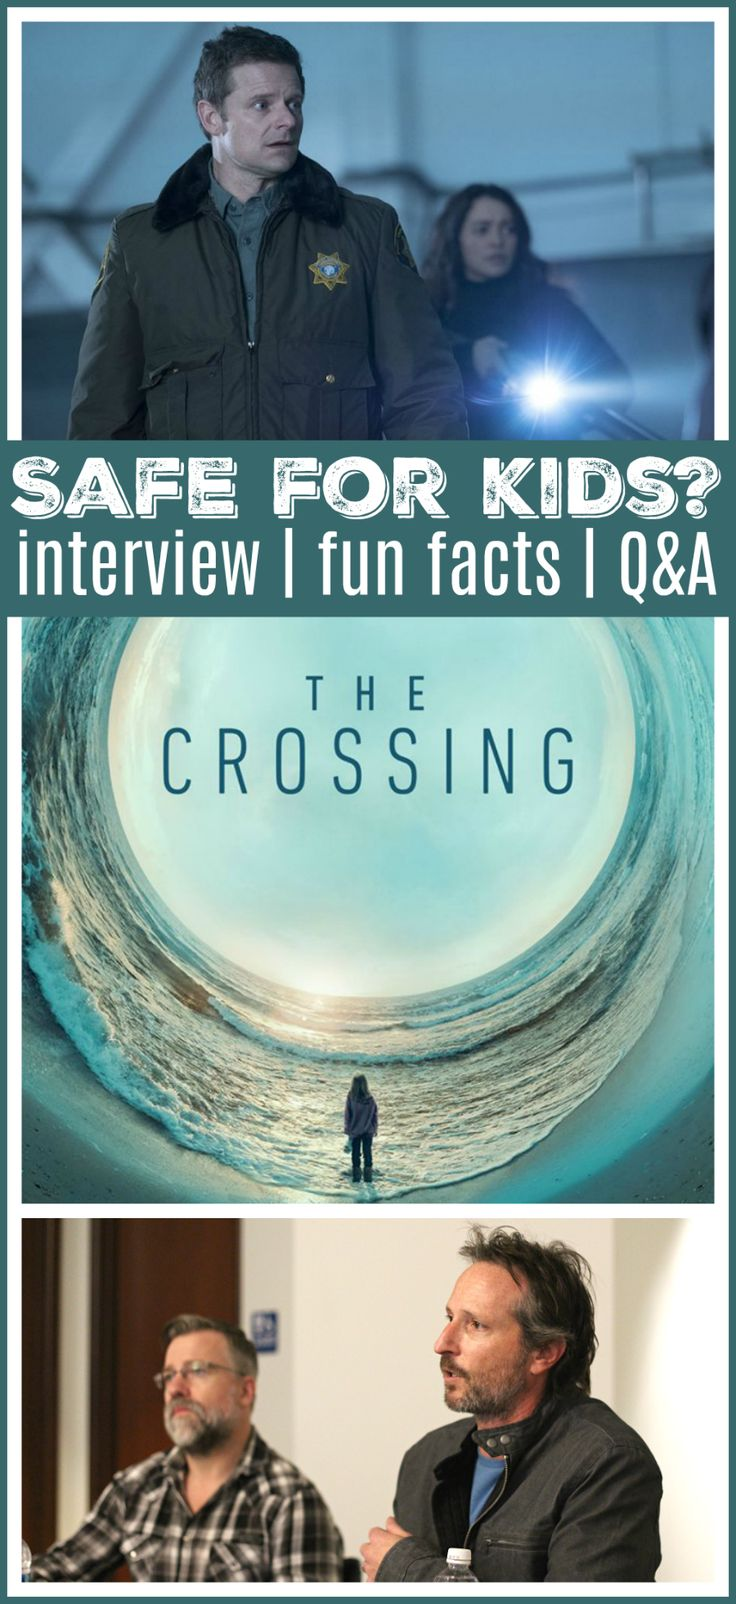 Abcs the crossing interview is this time travel show